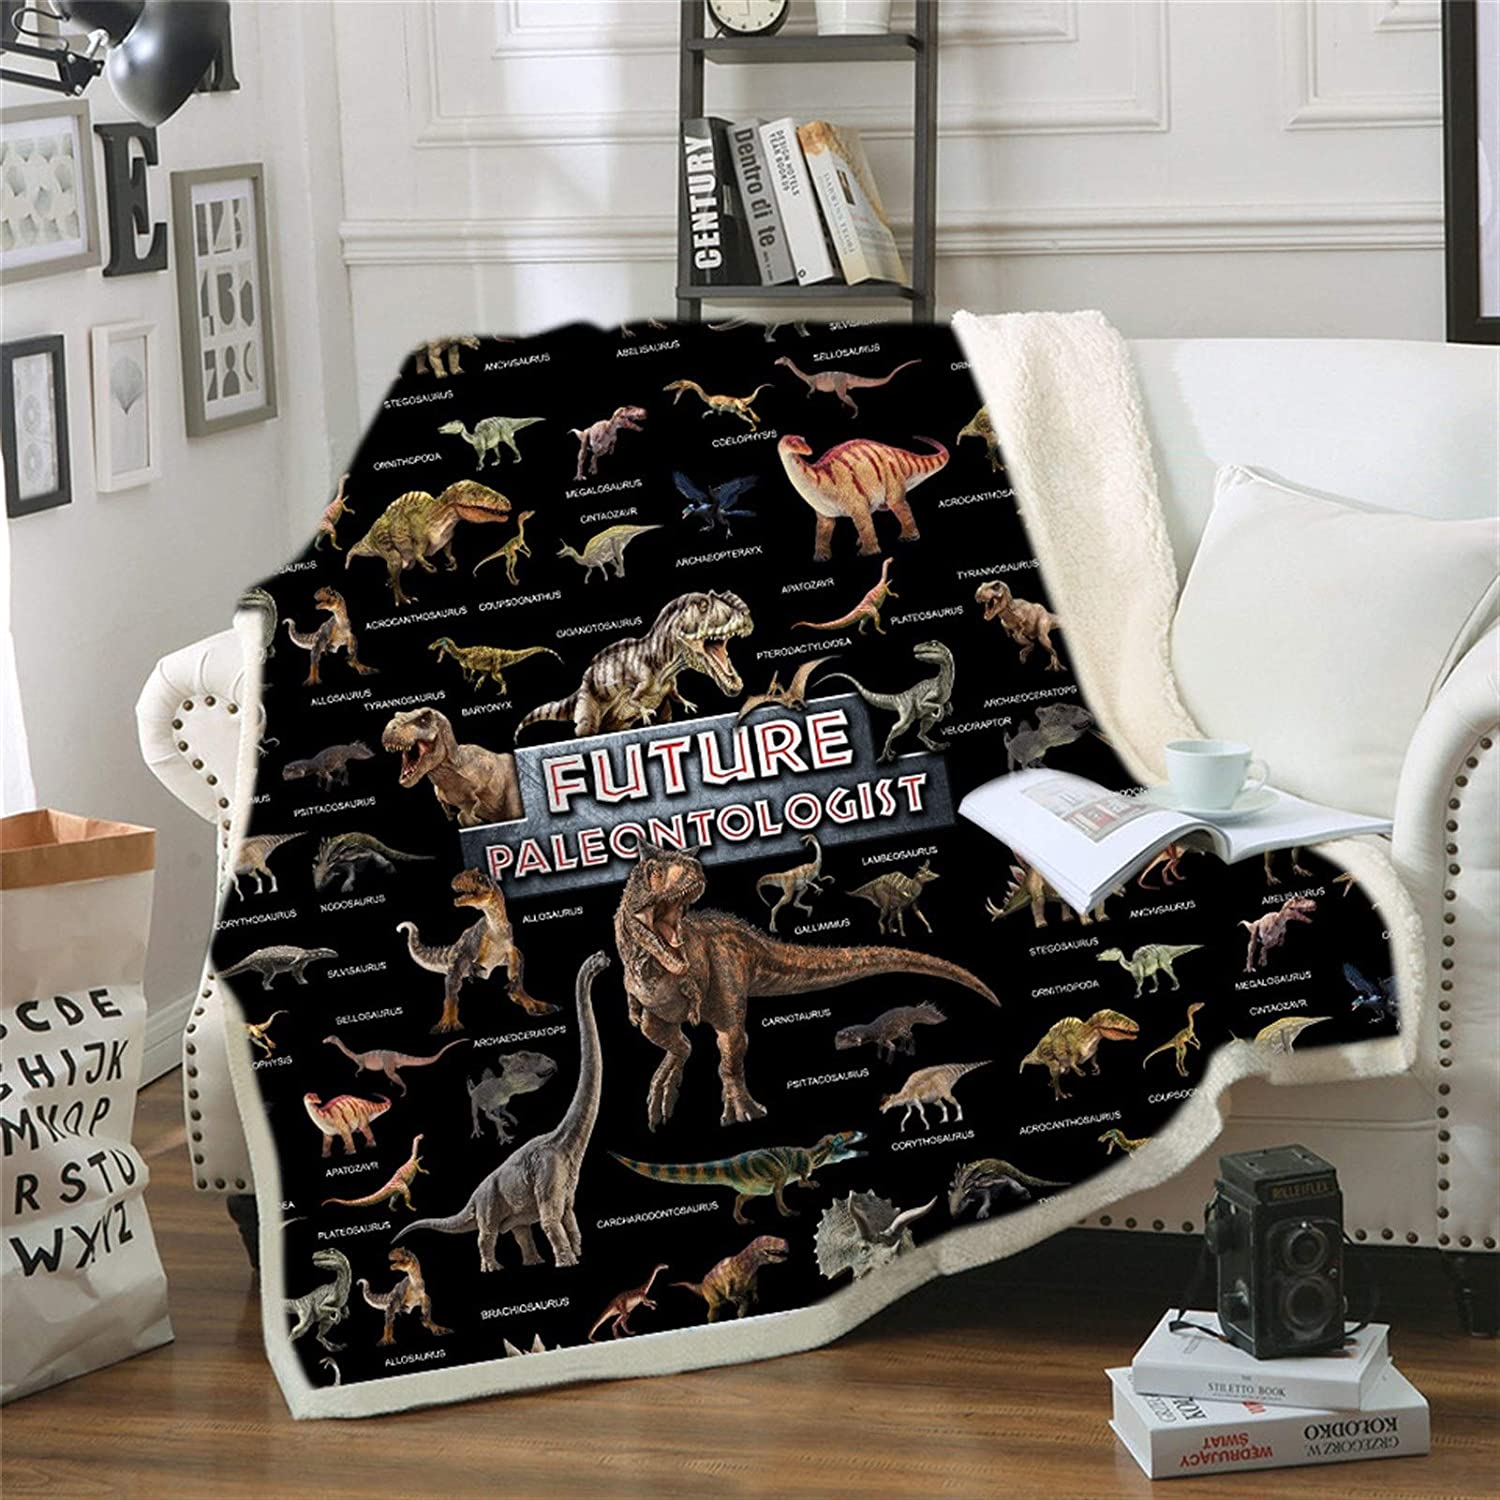 Soft Dinosaur Throw Limited price sale Blanket for Kids Fluffy Warm She Cozy Plush Sale